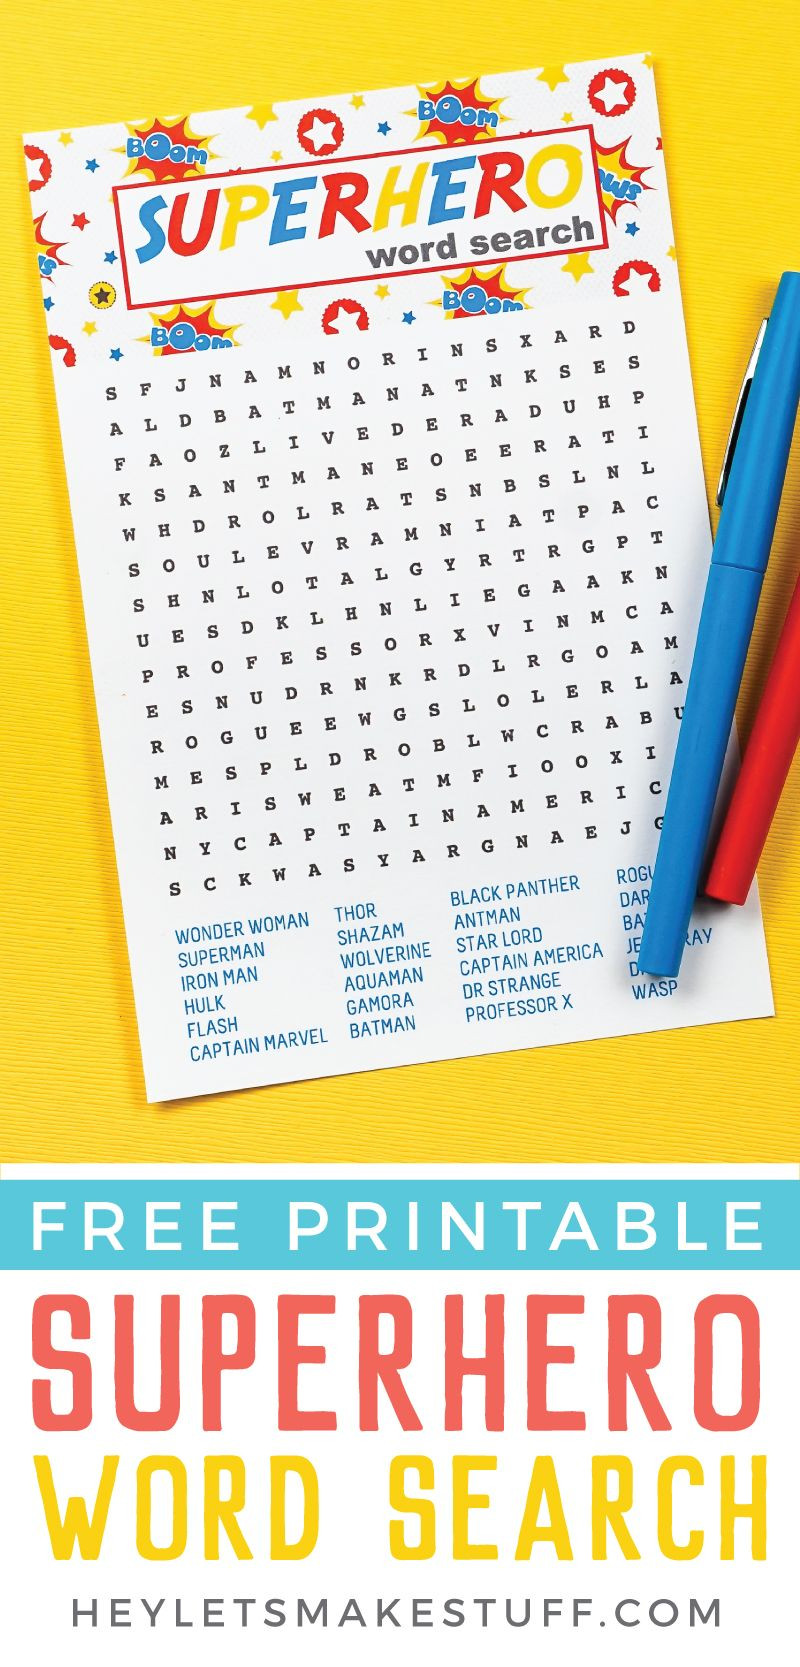 Superhero Word Search Printable Free Printable Superhero Word Search